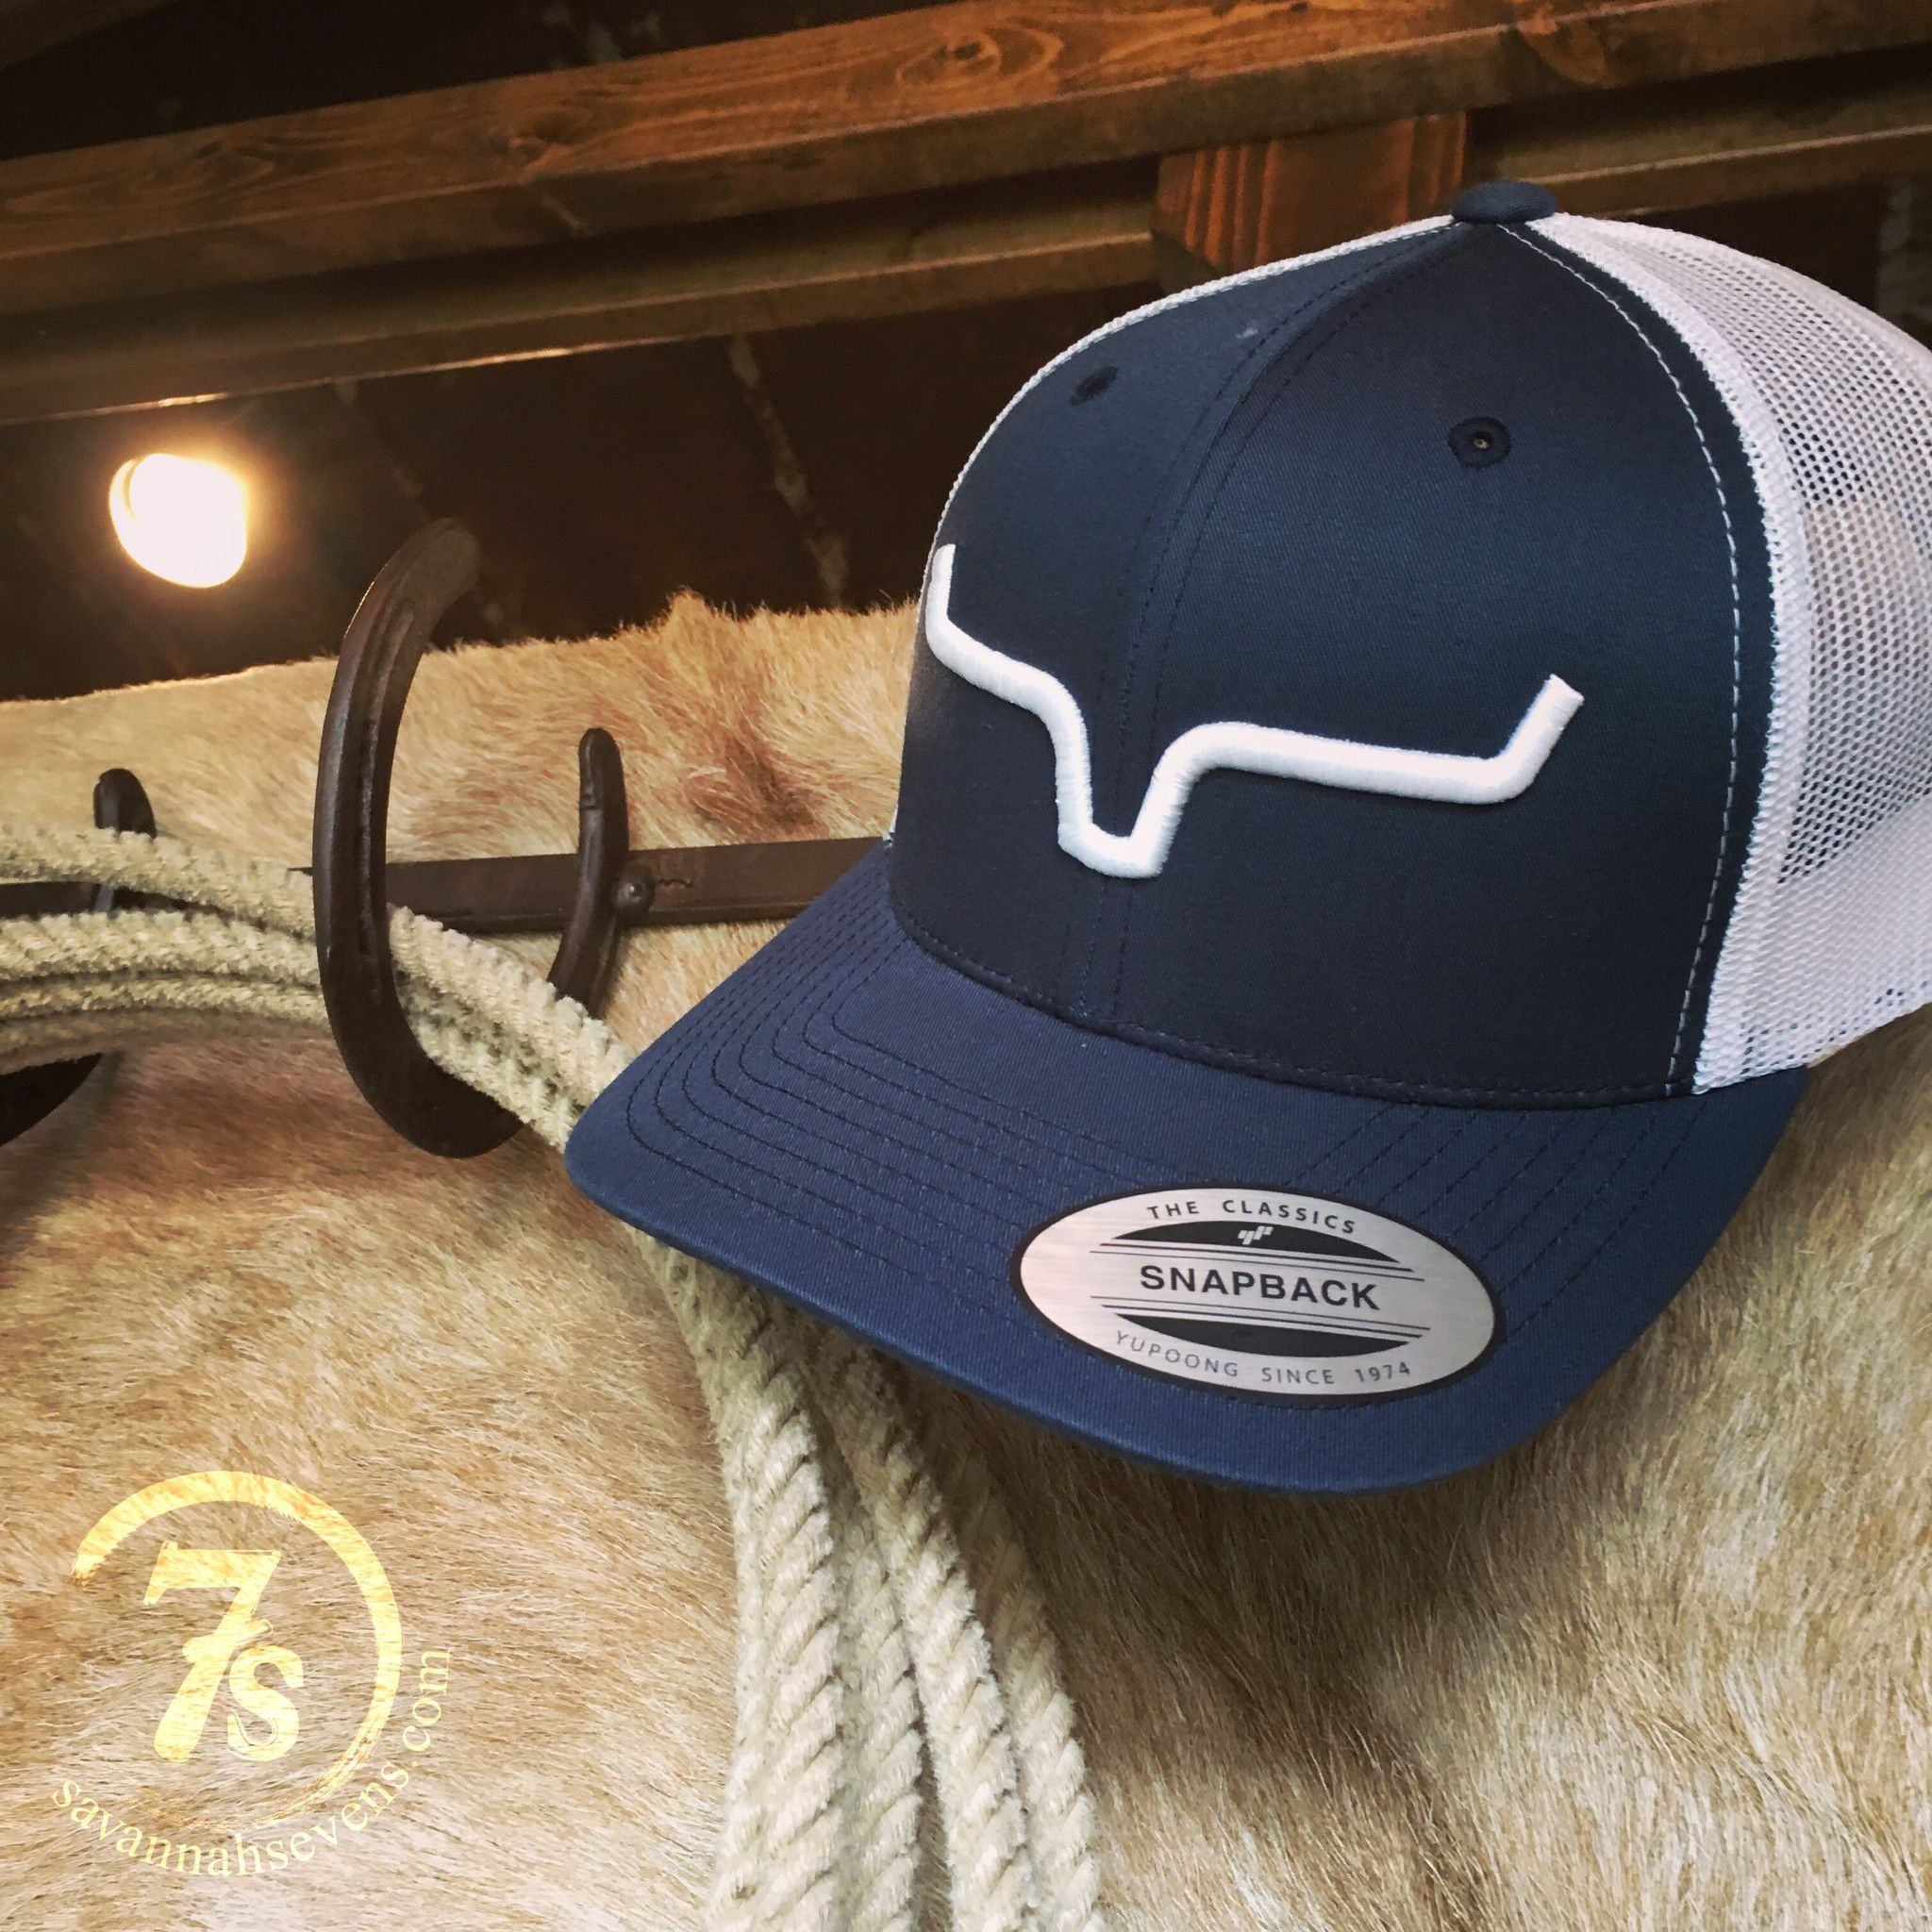 918ea8a1 Kimes Ranch cap - Navy and White - White 3-D embroidered Kimes horns logo -  Adjustable snap back - Mesh back - Flexible brim